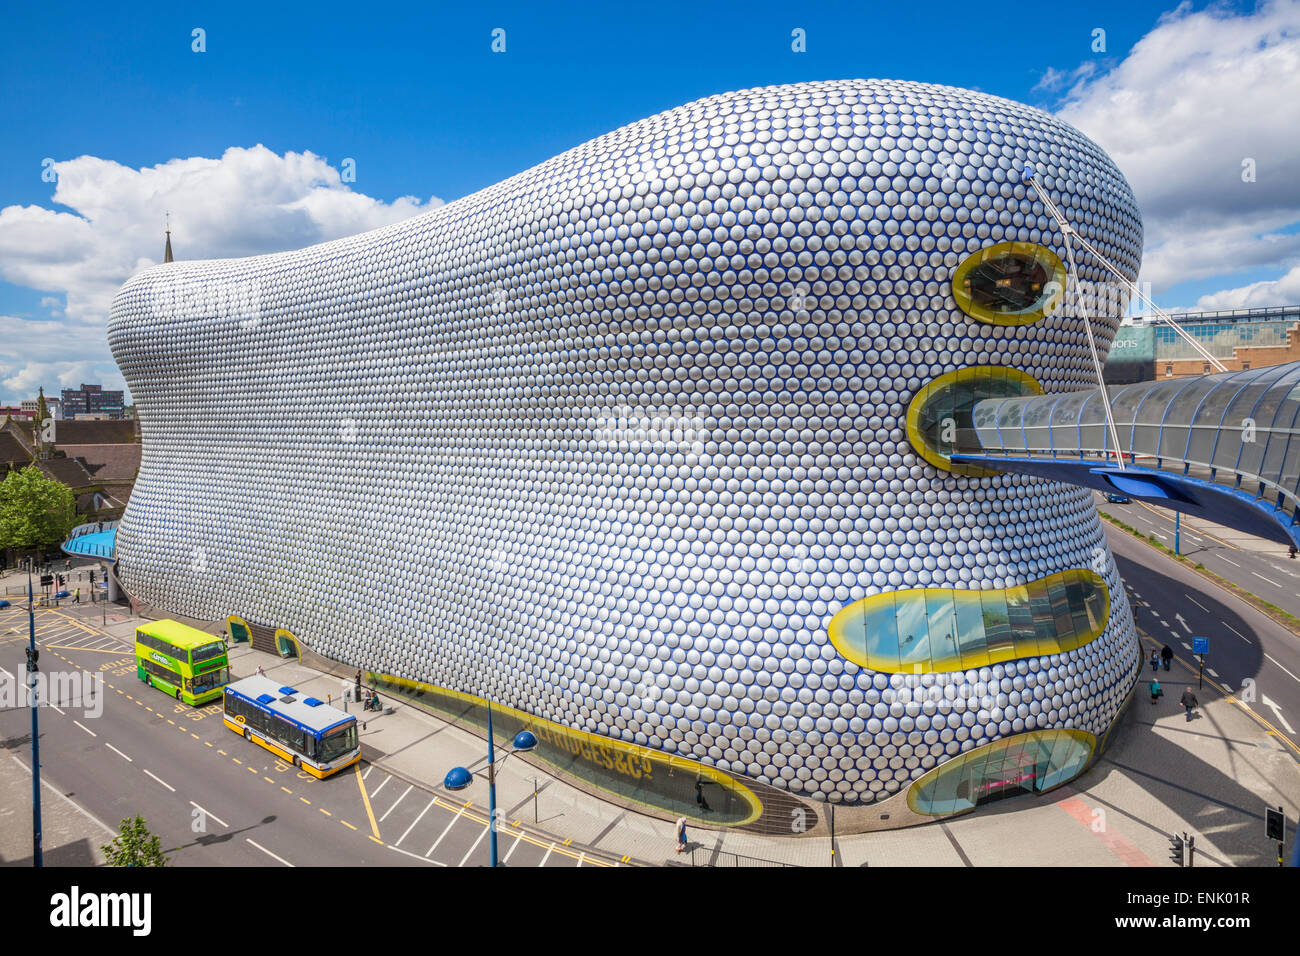 Selfridges department store with buses outside, Birmingham Bull Ring, Birmingham, West Midlands, England, United - Stock Image